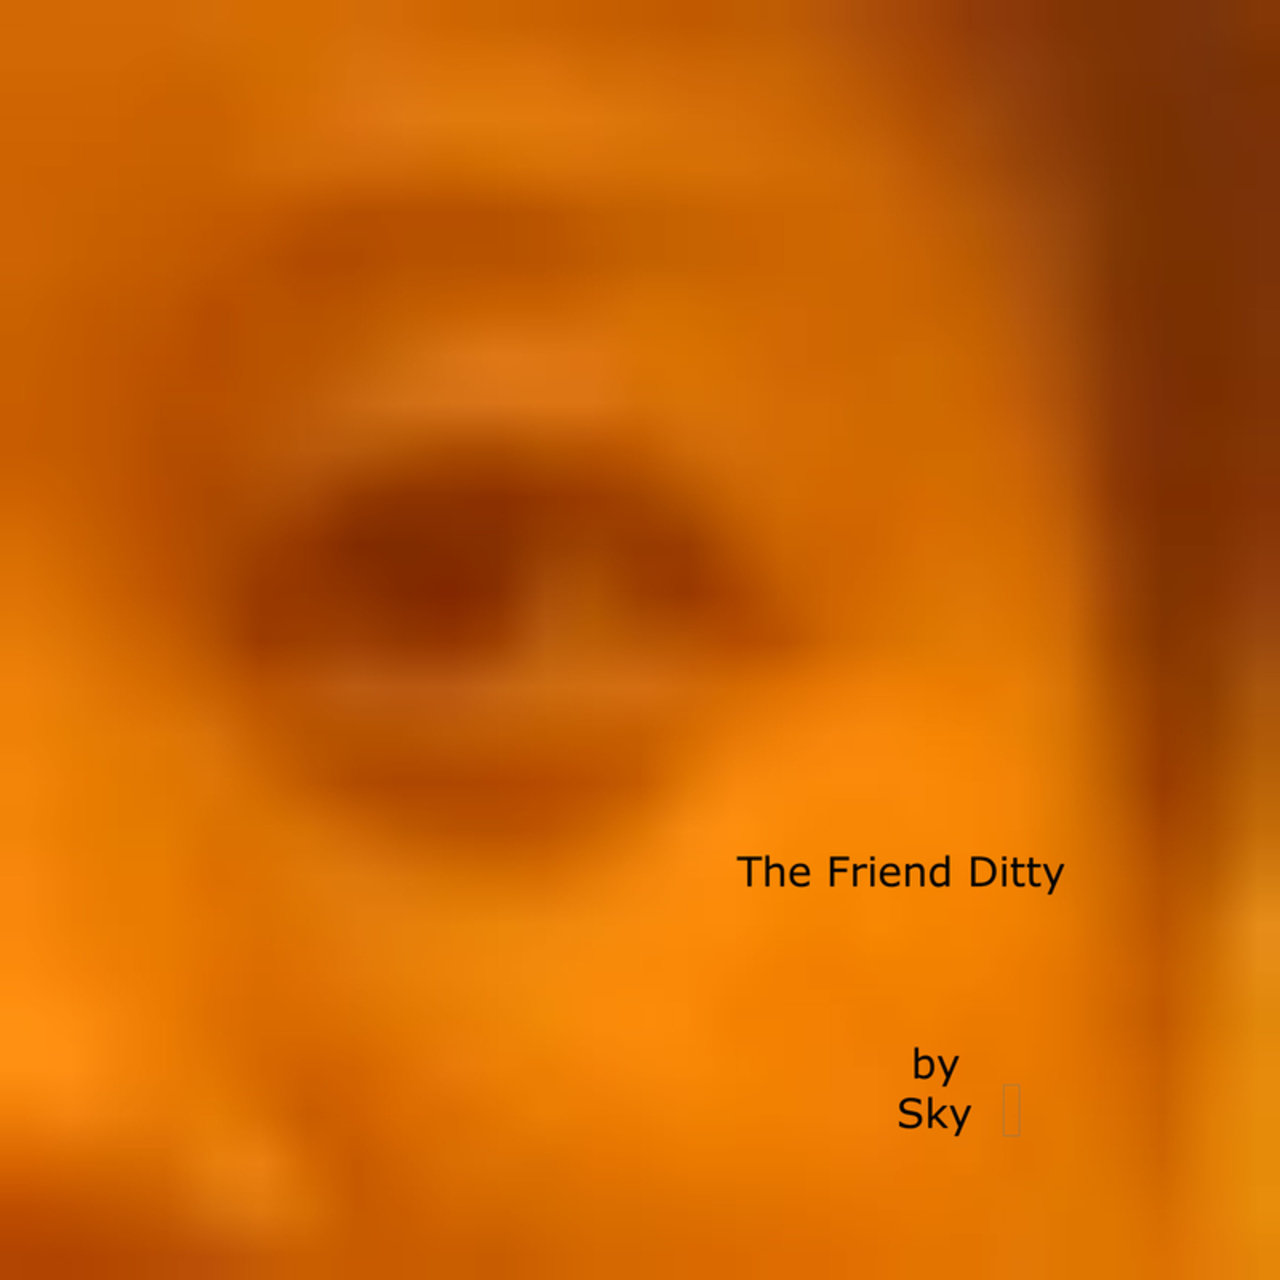 The Friend Ditty